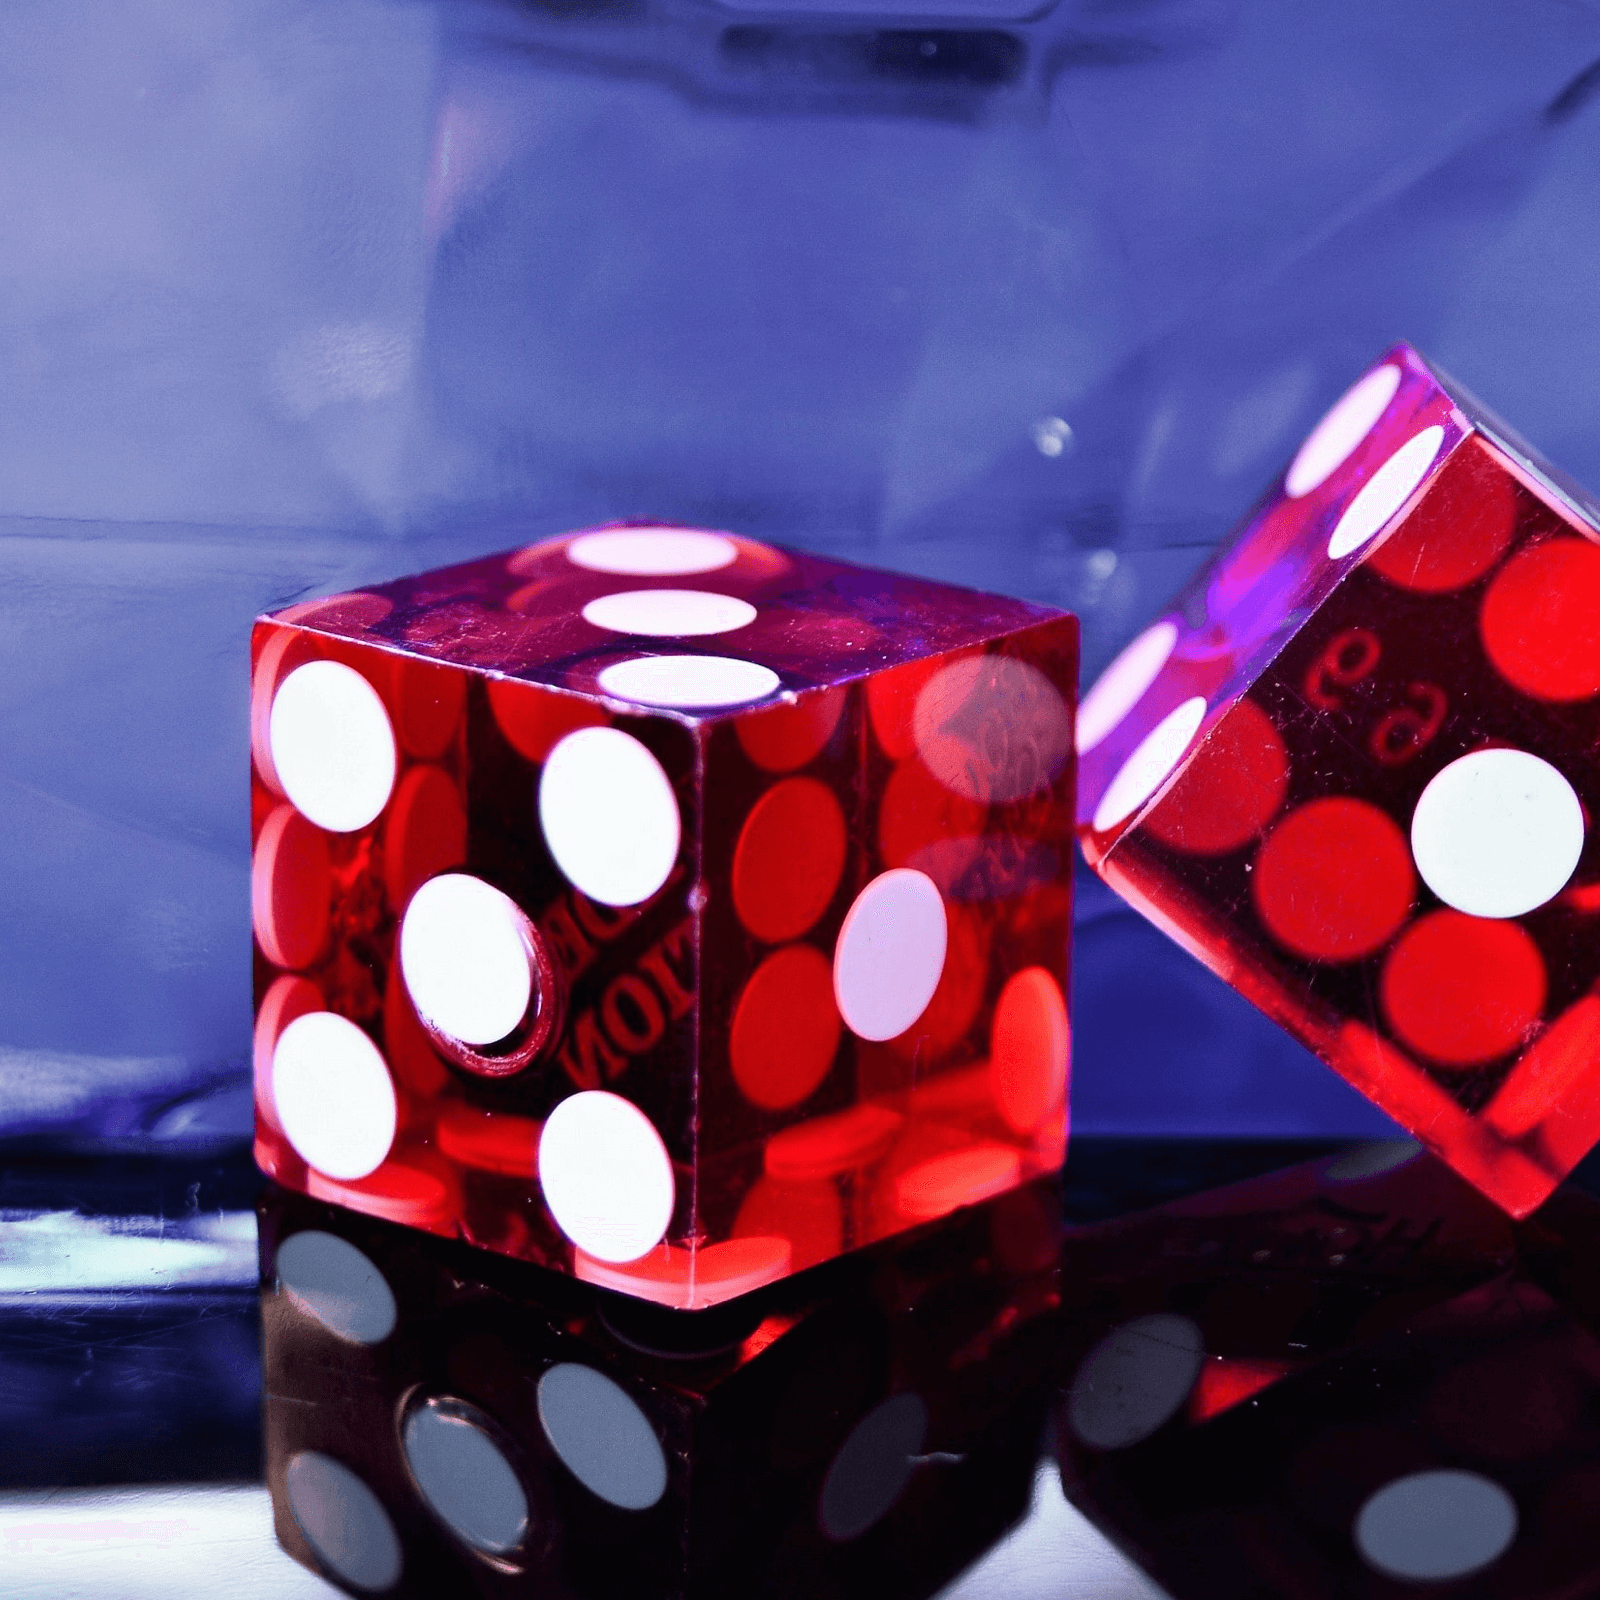 Elements of gamification